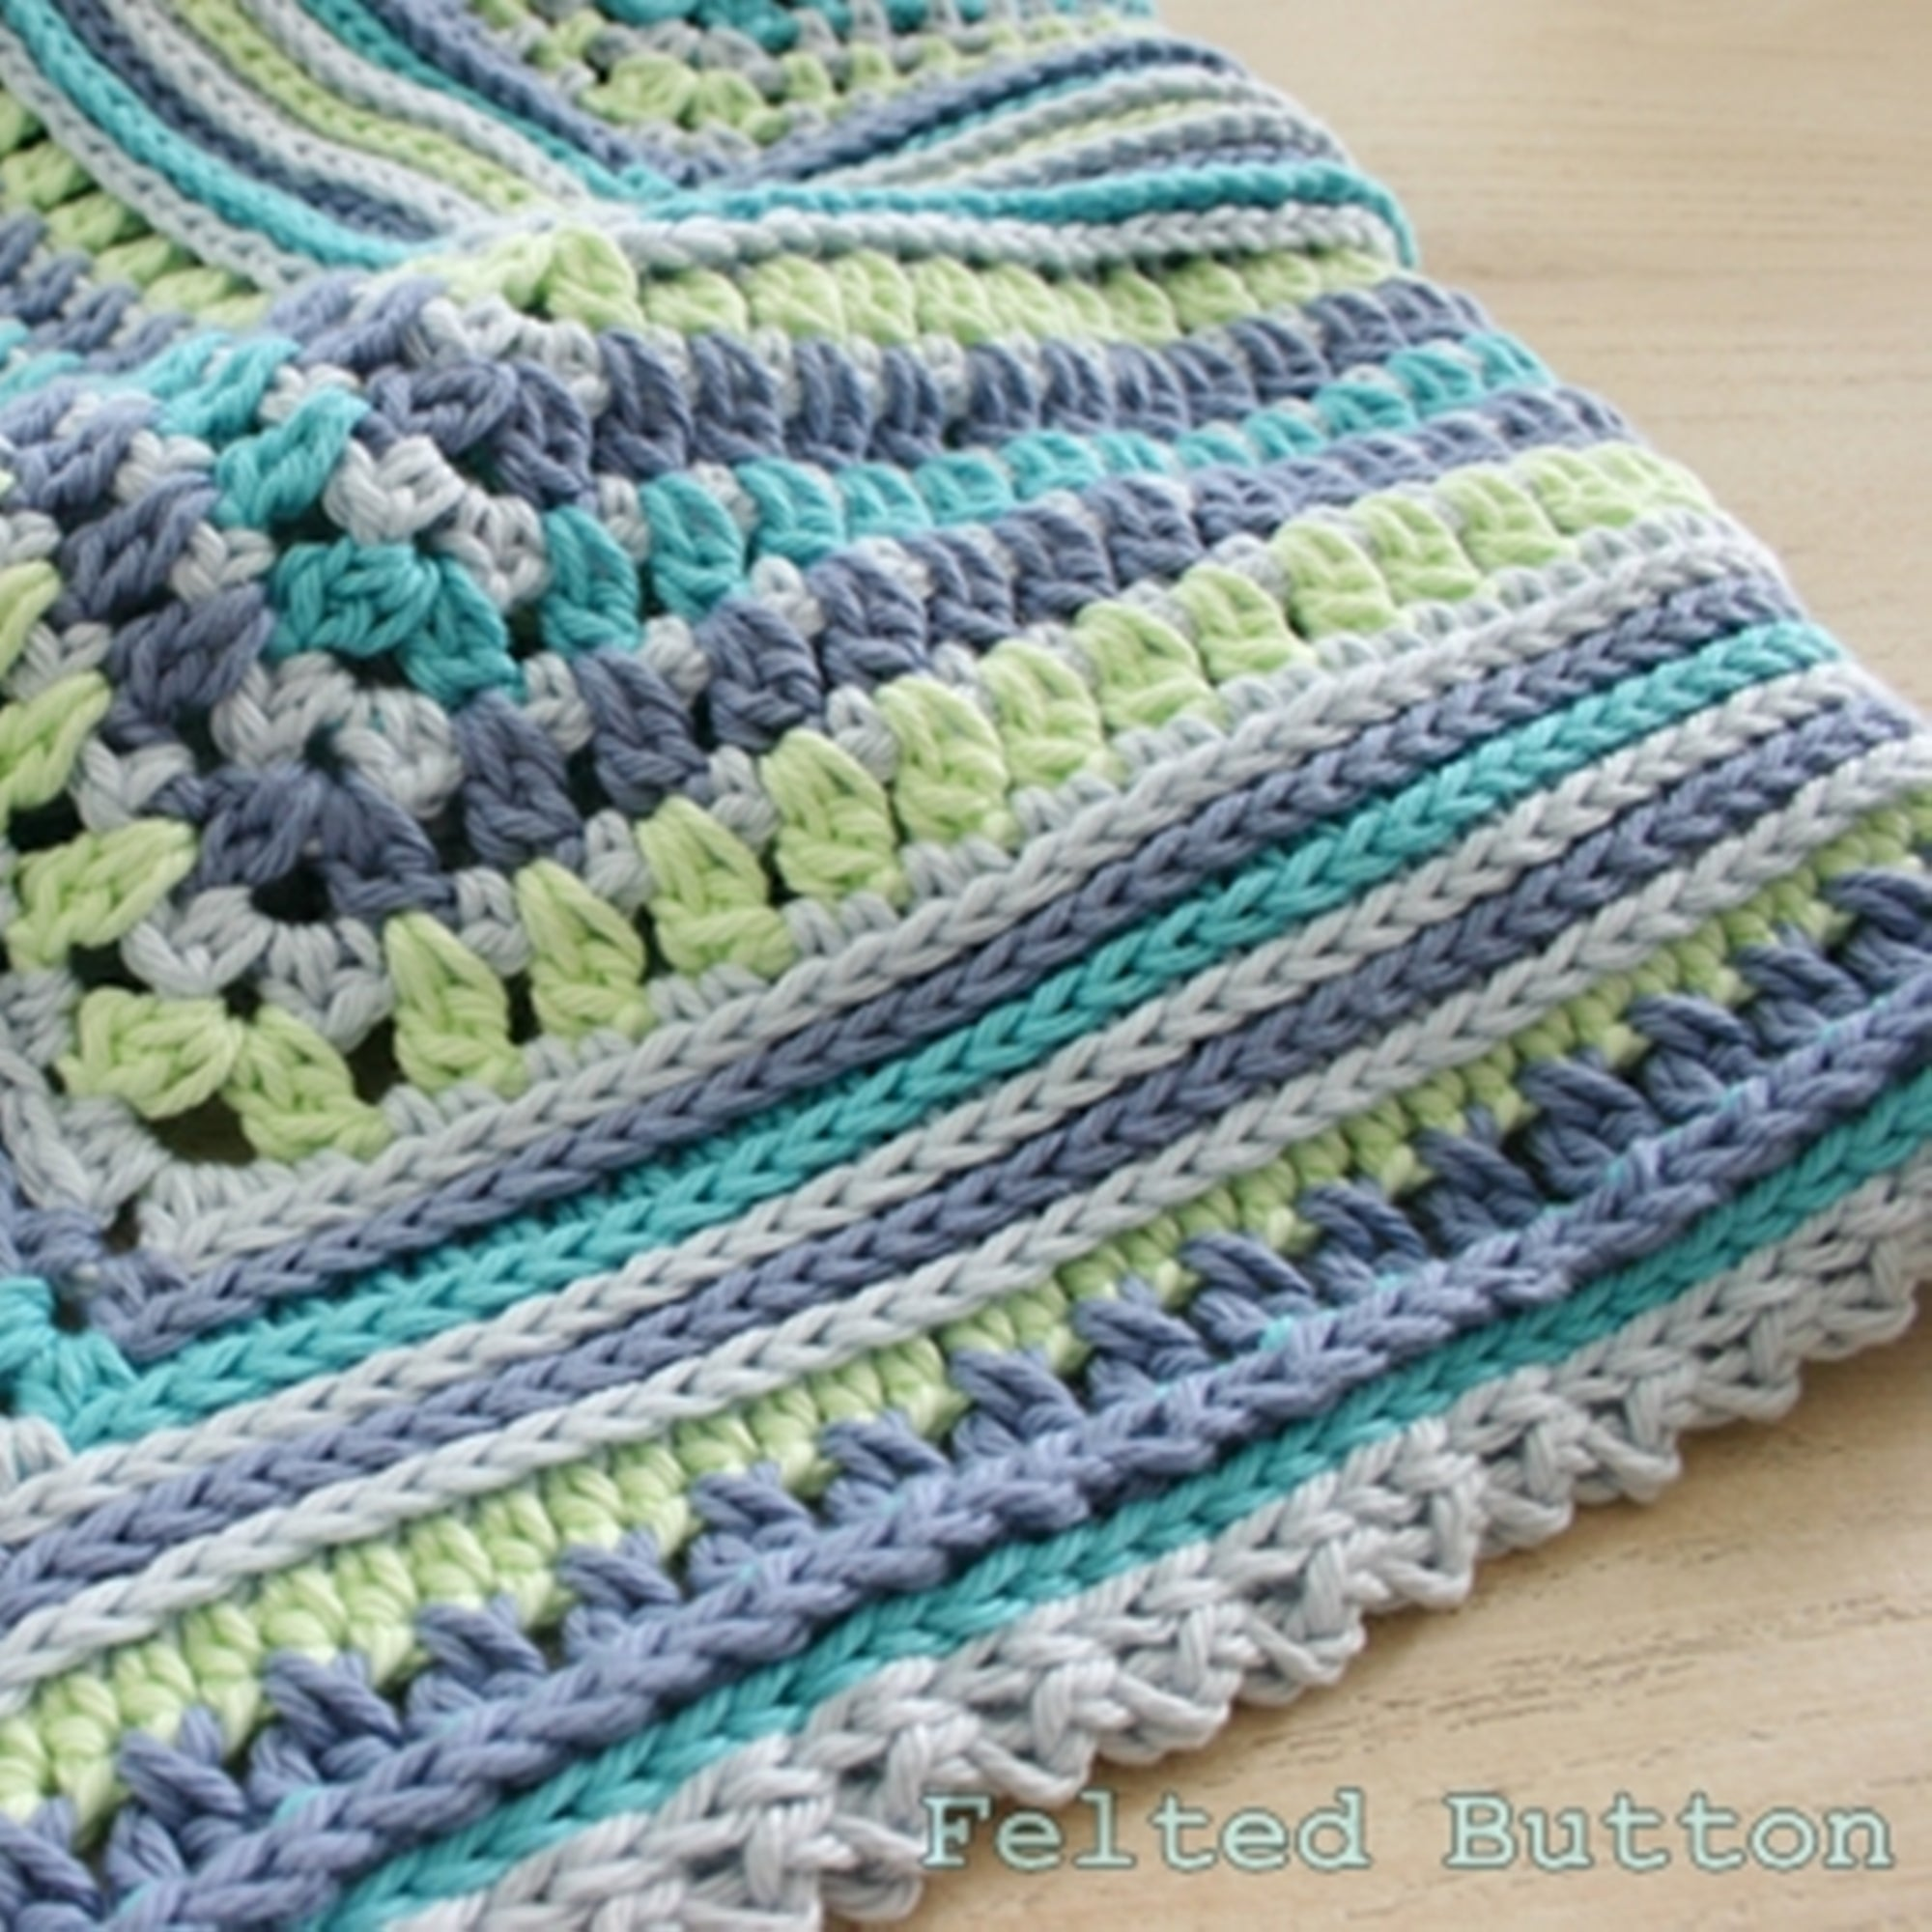 Breath of Heaven Blanket | Crochet Pattern | Felted Button